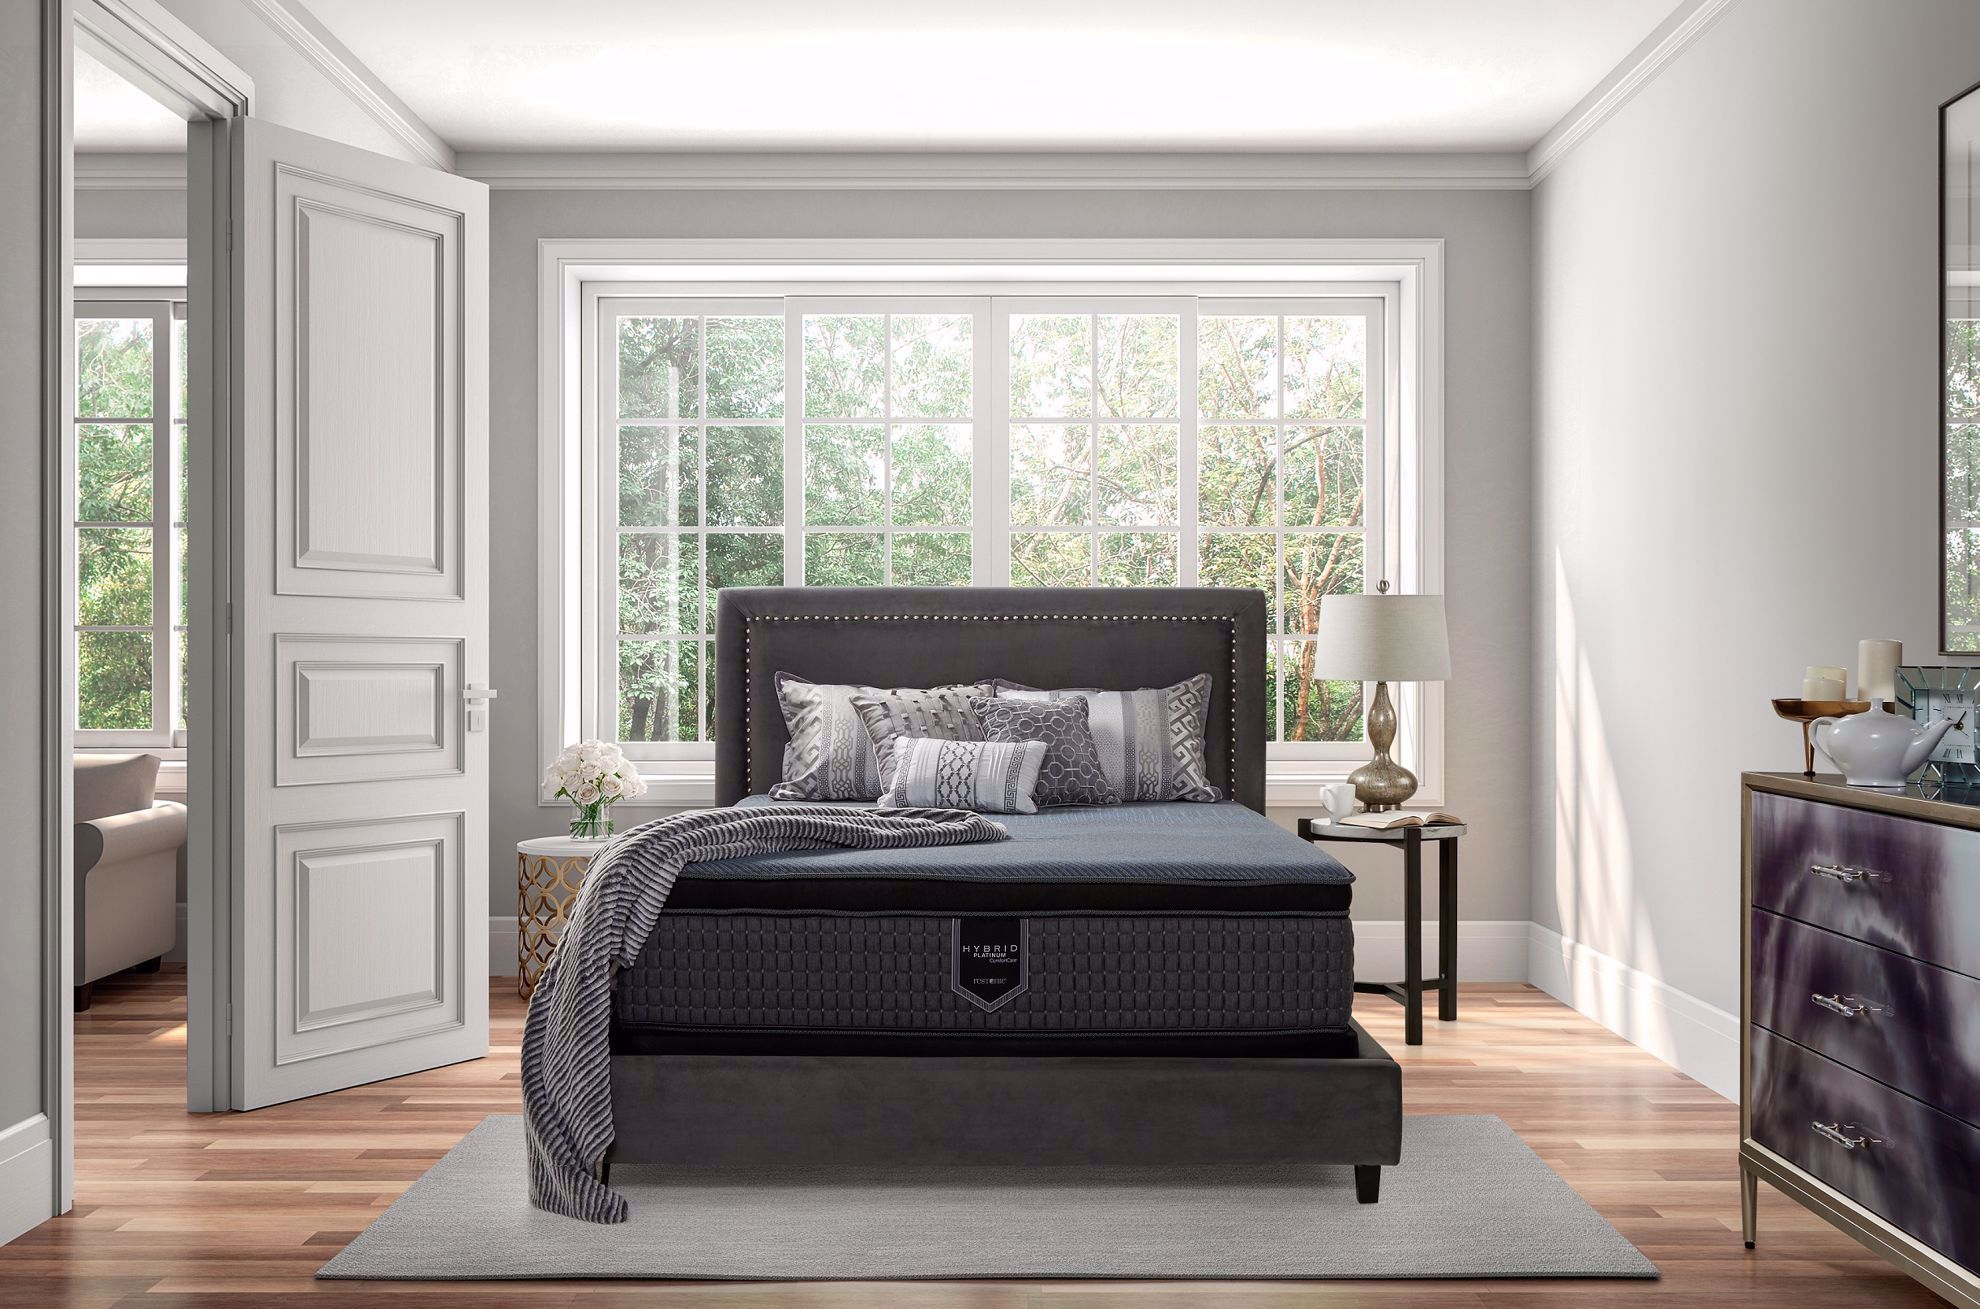 Picture of Restonic Endure Firm EuroTop Twin XL Mattress Set